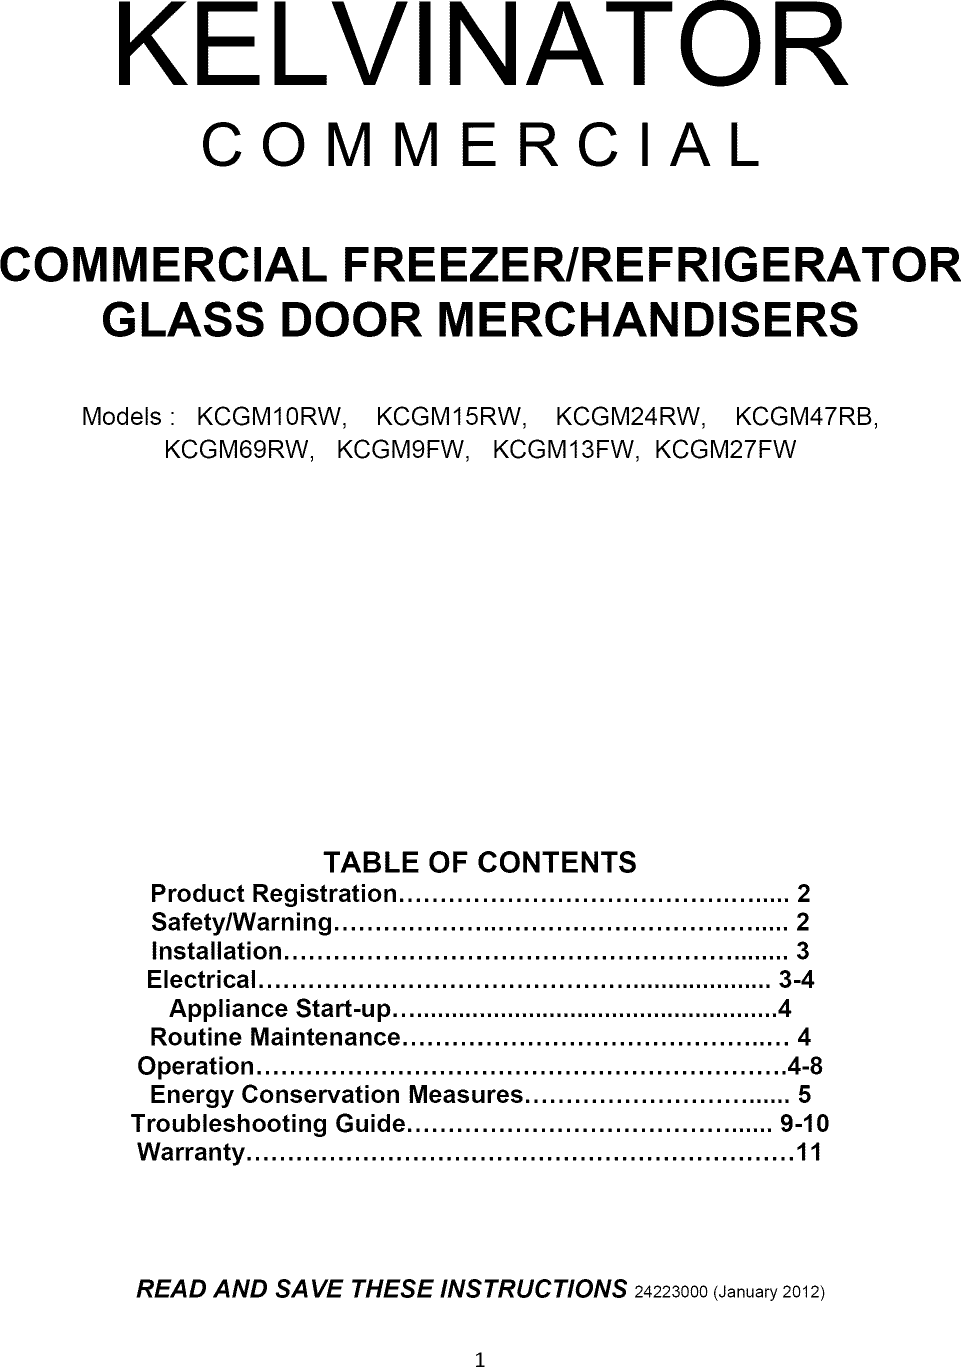 kelvinator kcgm10rb user manual glass door refrigerator manuals and rh usermanual wiki kelvinator refrigerator repair manual Old Kelvinator Refrigerator Parts